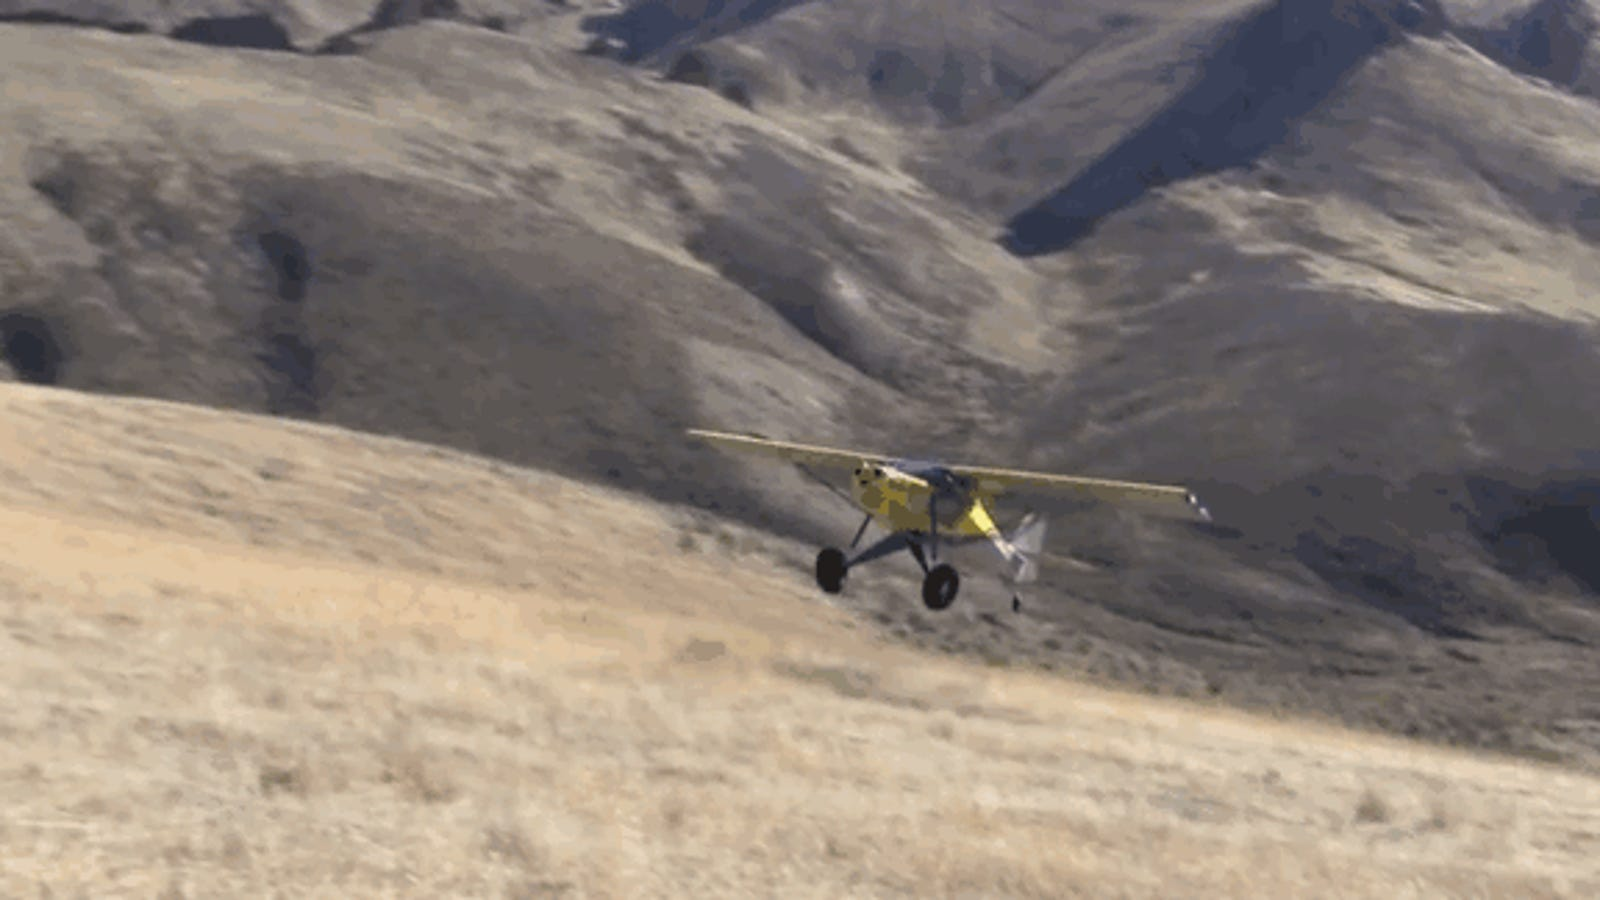 Watch This Backcountry Pilot Land On A 50 Percent Grade